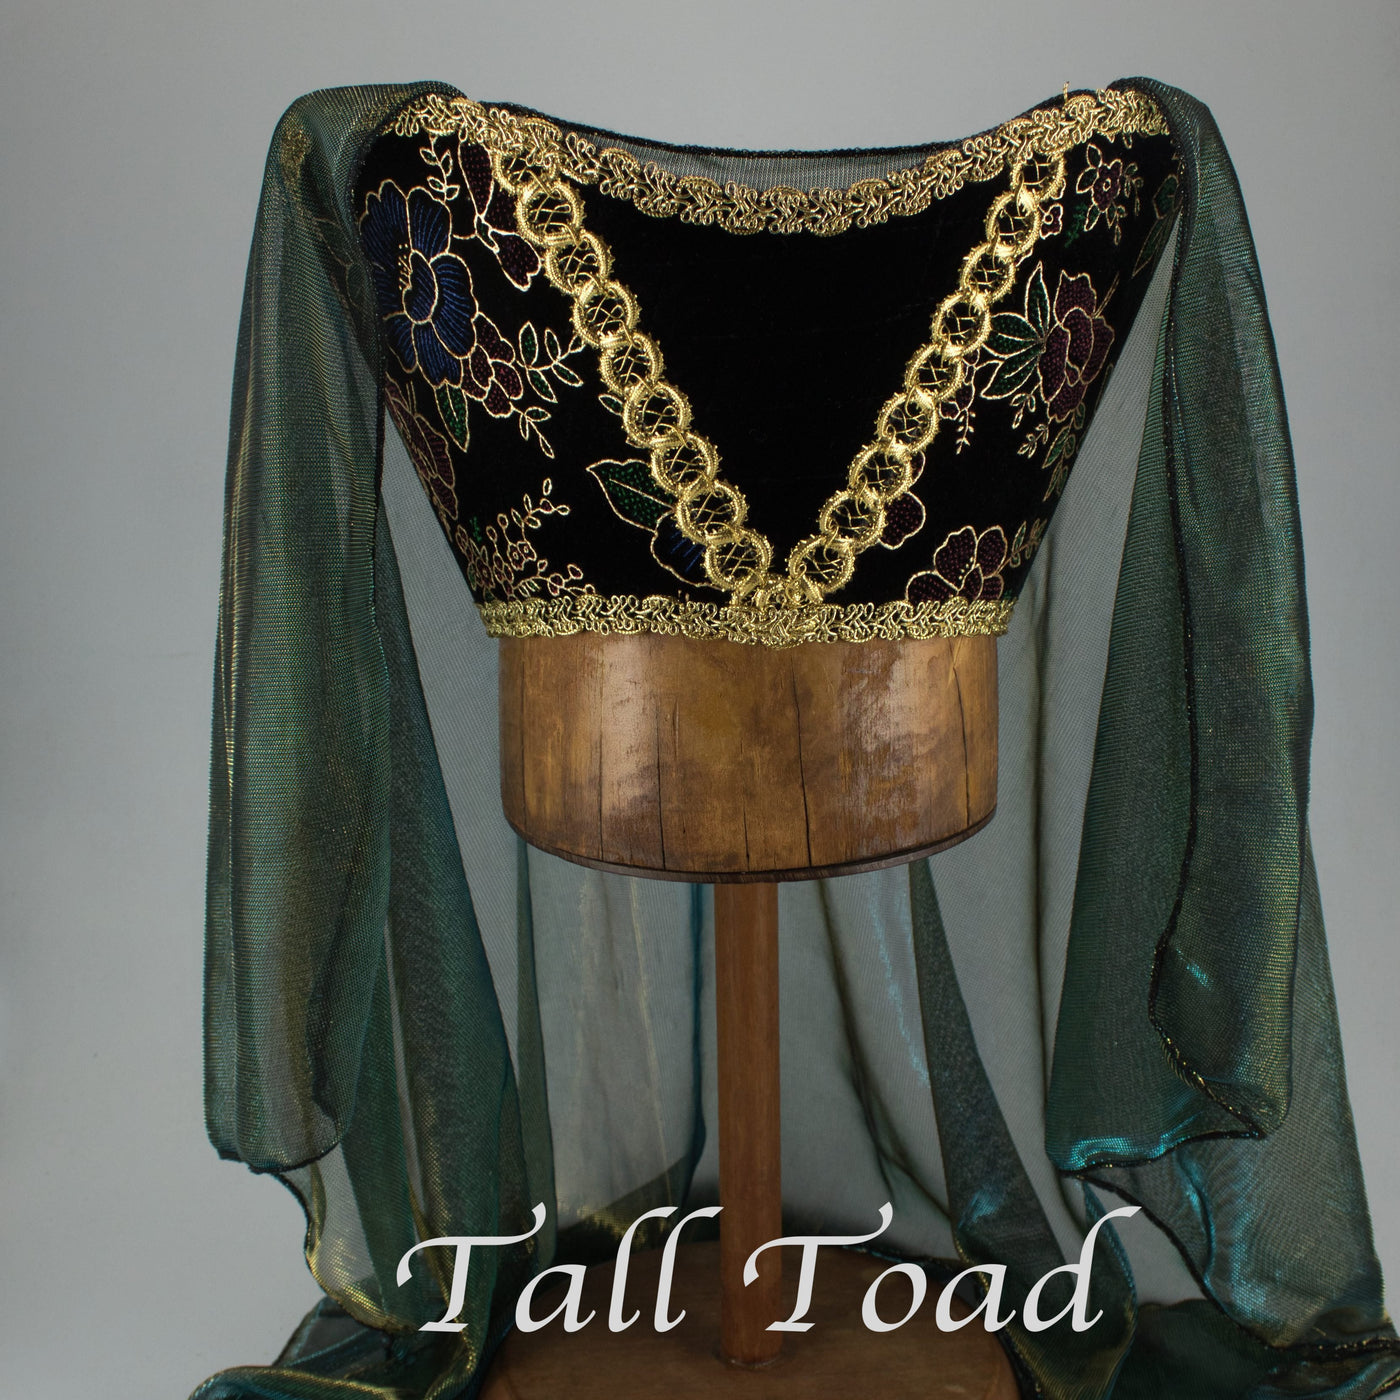 Horned Headdress - Black Multi Colored Velvet/Gold Trim/Teal Metallic Veil - Tall Toad